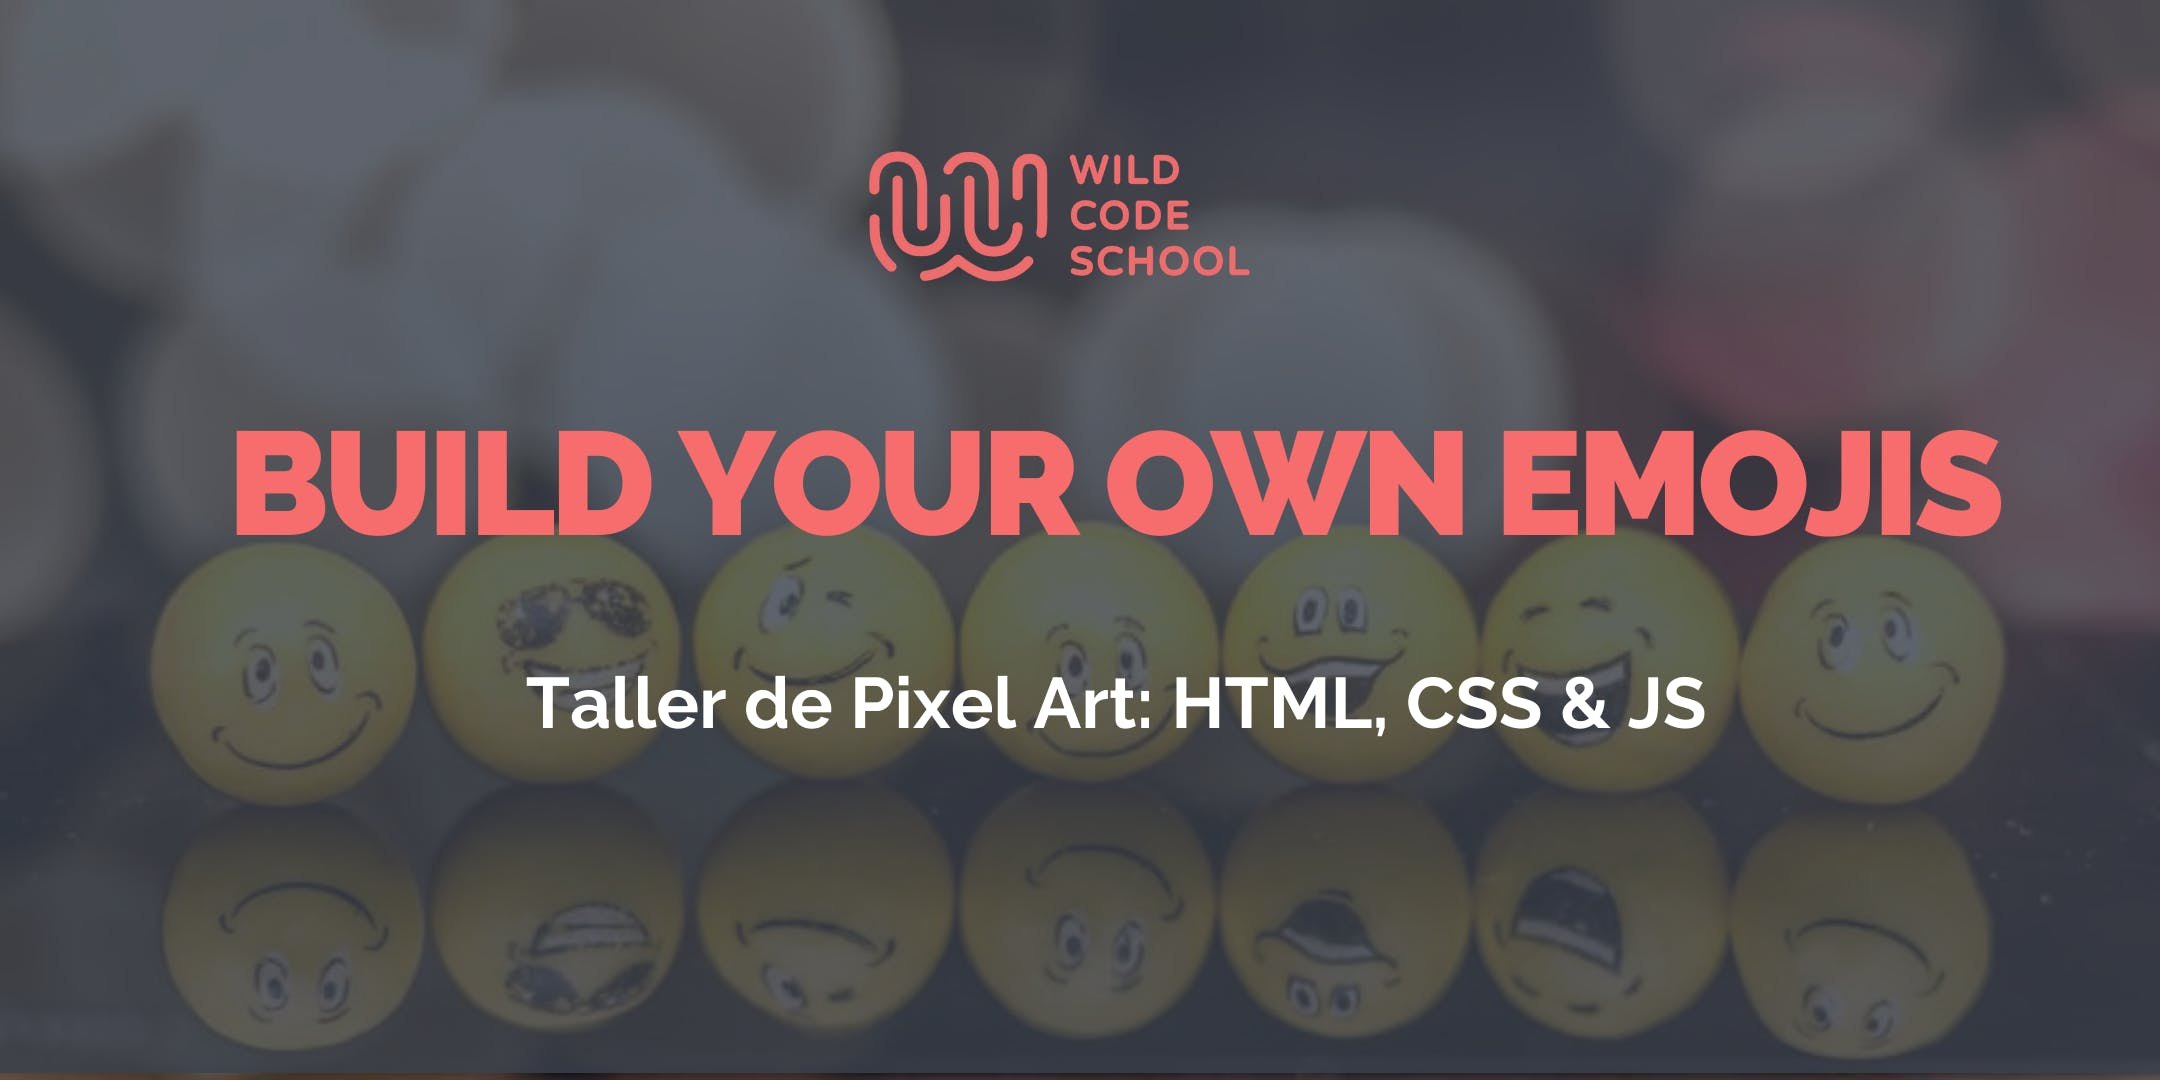 Wild Workshop  for Beginners - HTML, CSS & JS: CREATE YOUR VERY OWN EMOJIS